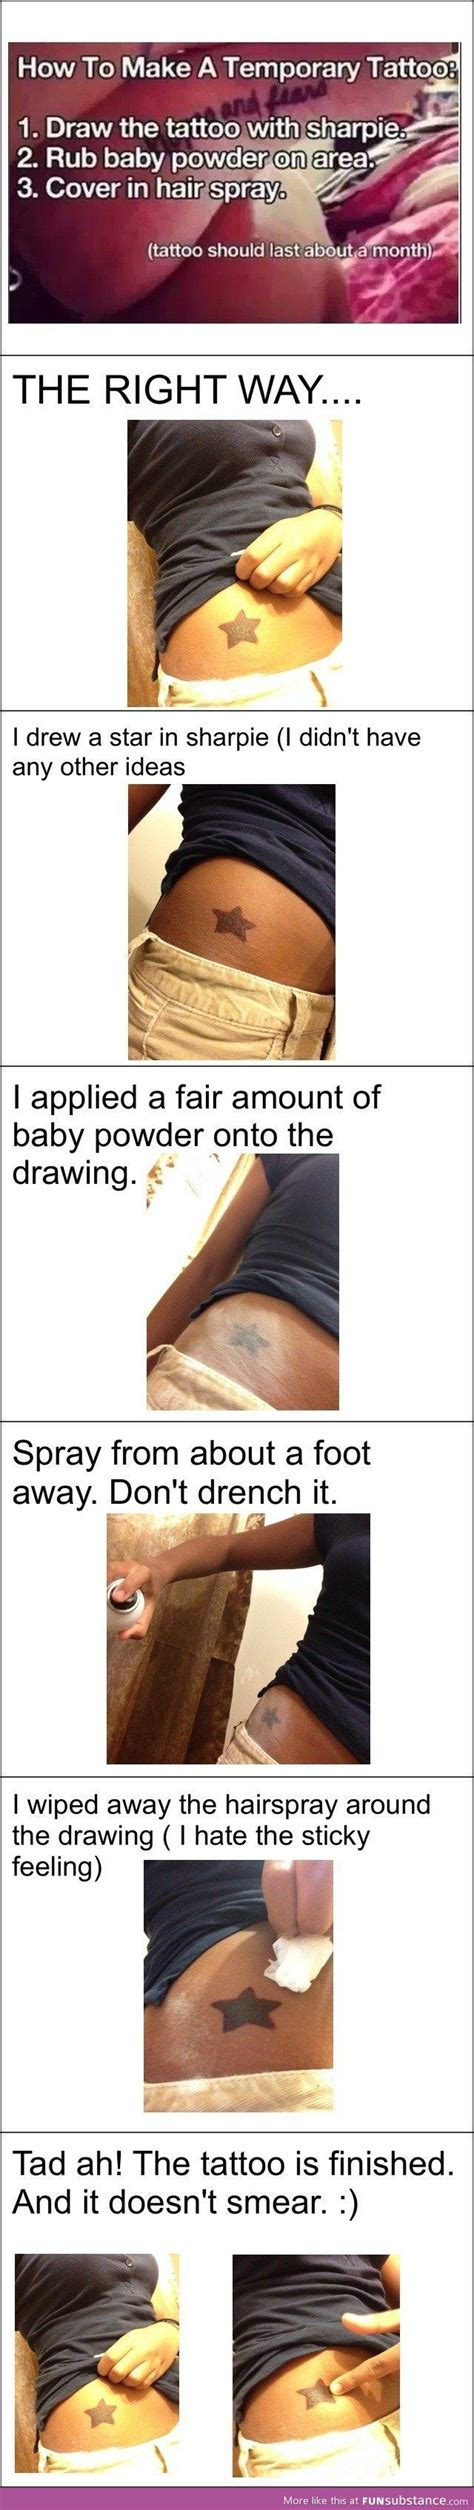 diy temporary tattoos diy temporary great way to see if you ll like the